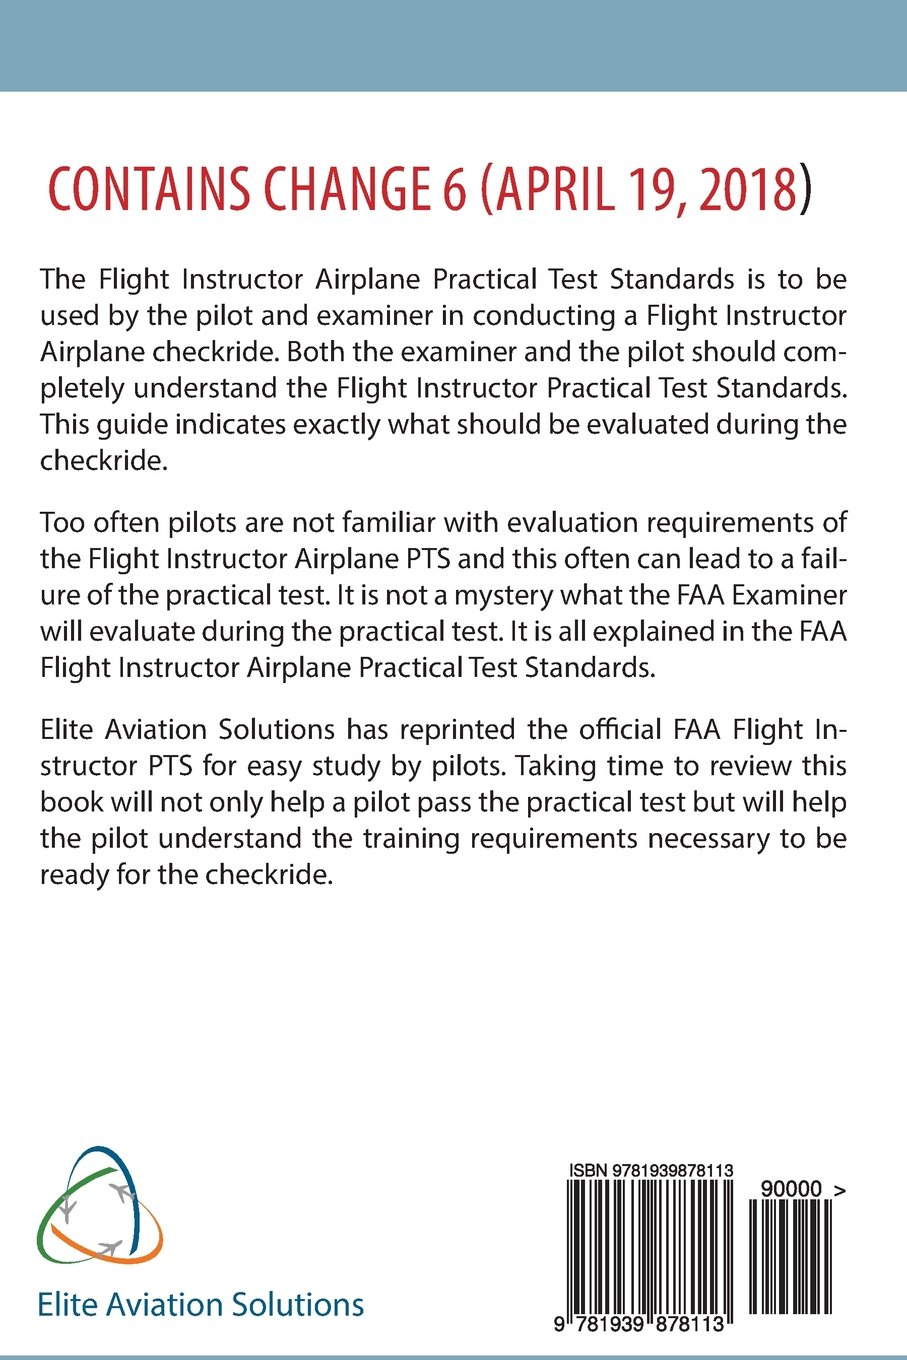 Flight Instructor Practical Test Standards For Airplane (FAA